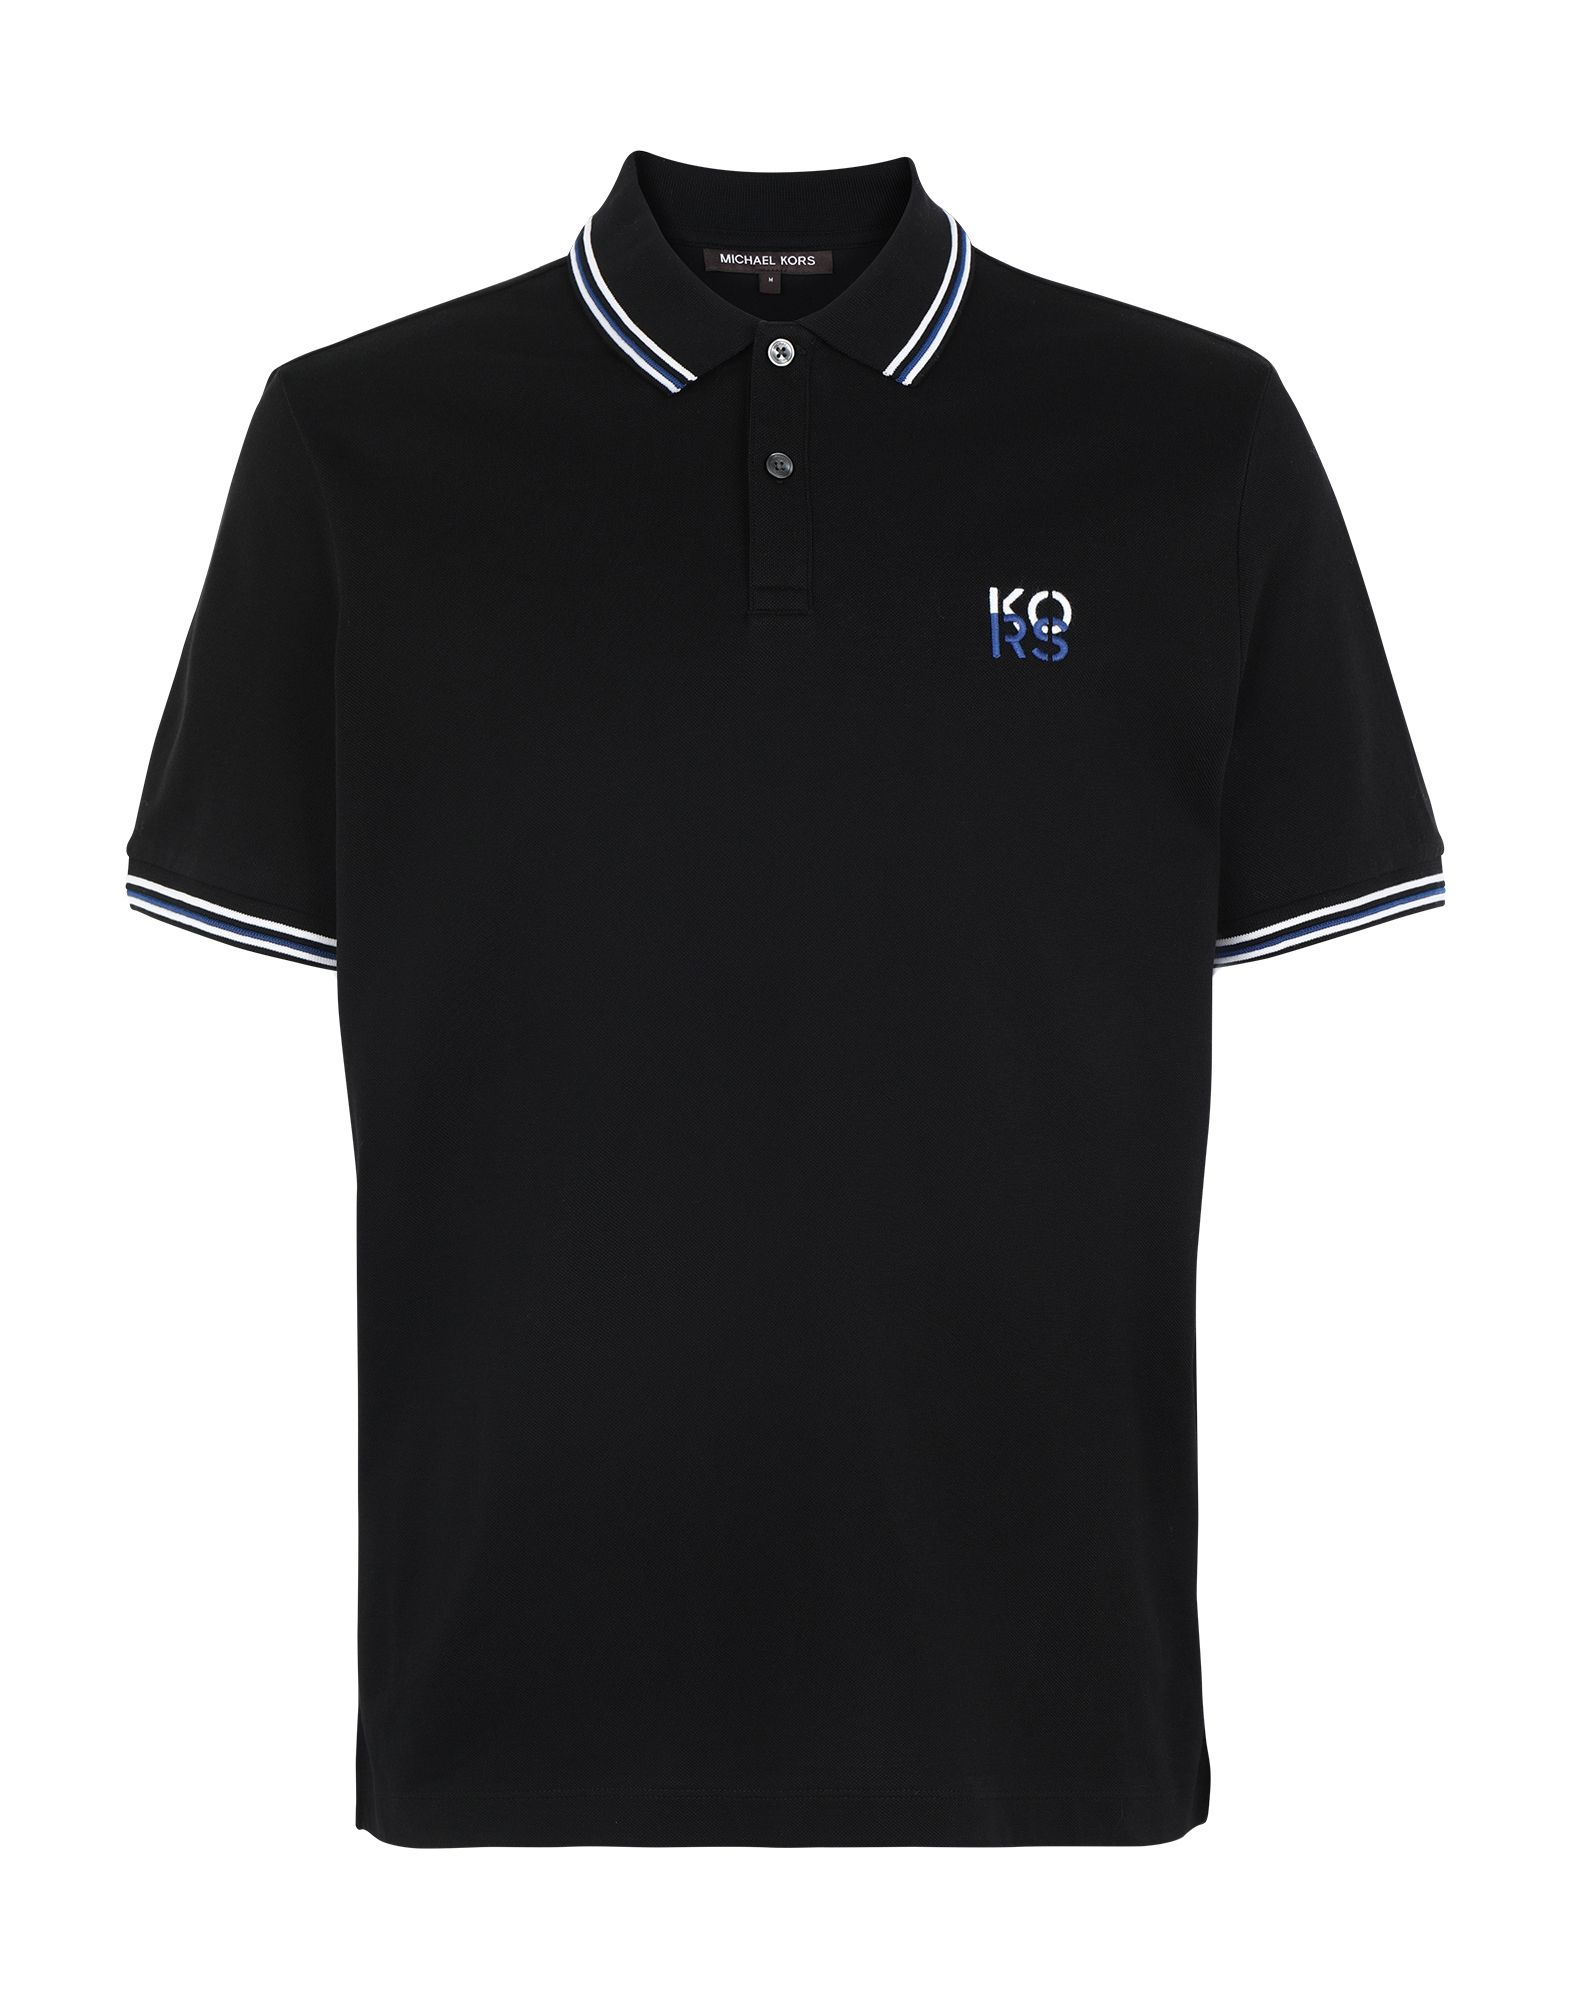 MICHAEL KORS MENS Поло